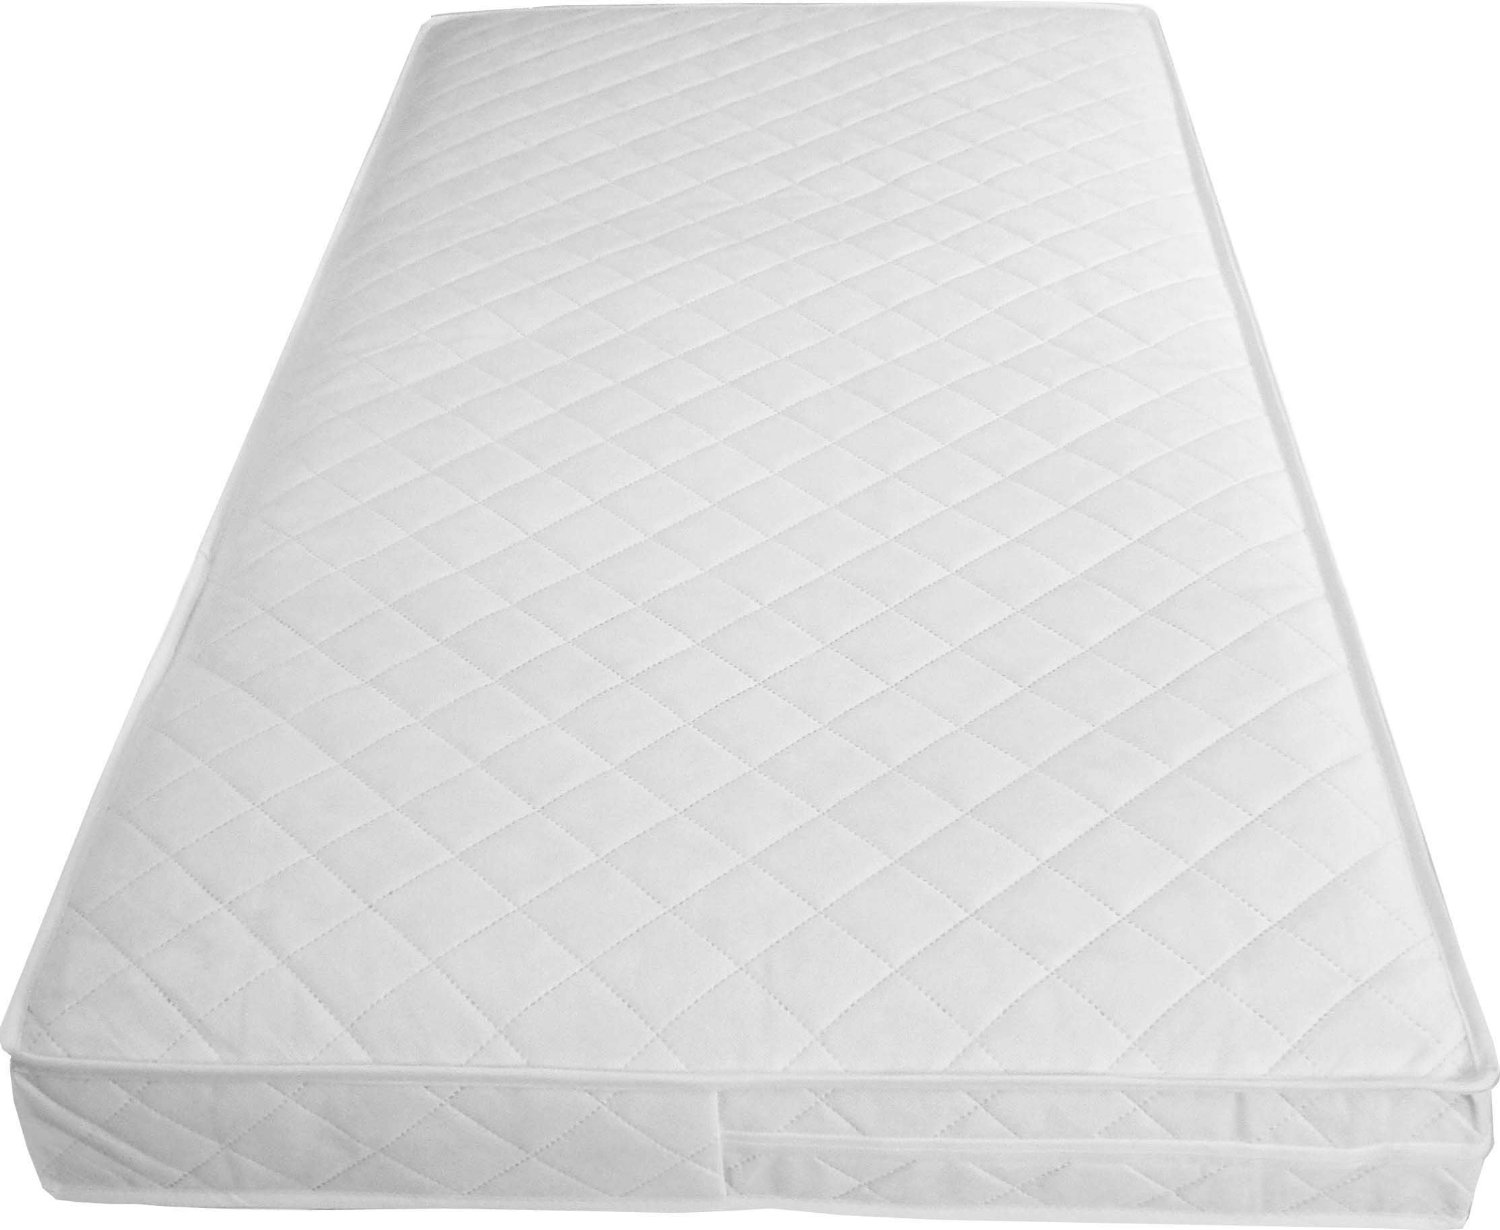 mattress top view. Baby Cot Mattresses Mattress Top View 8